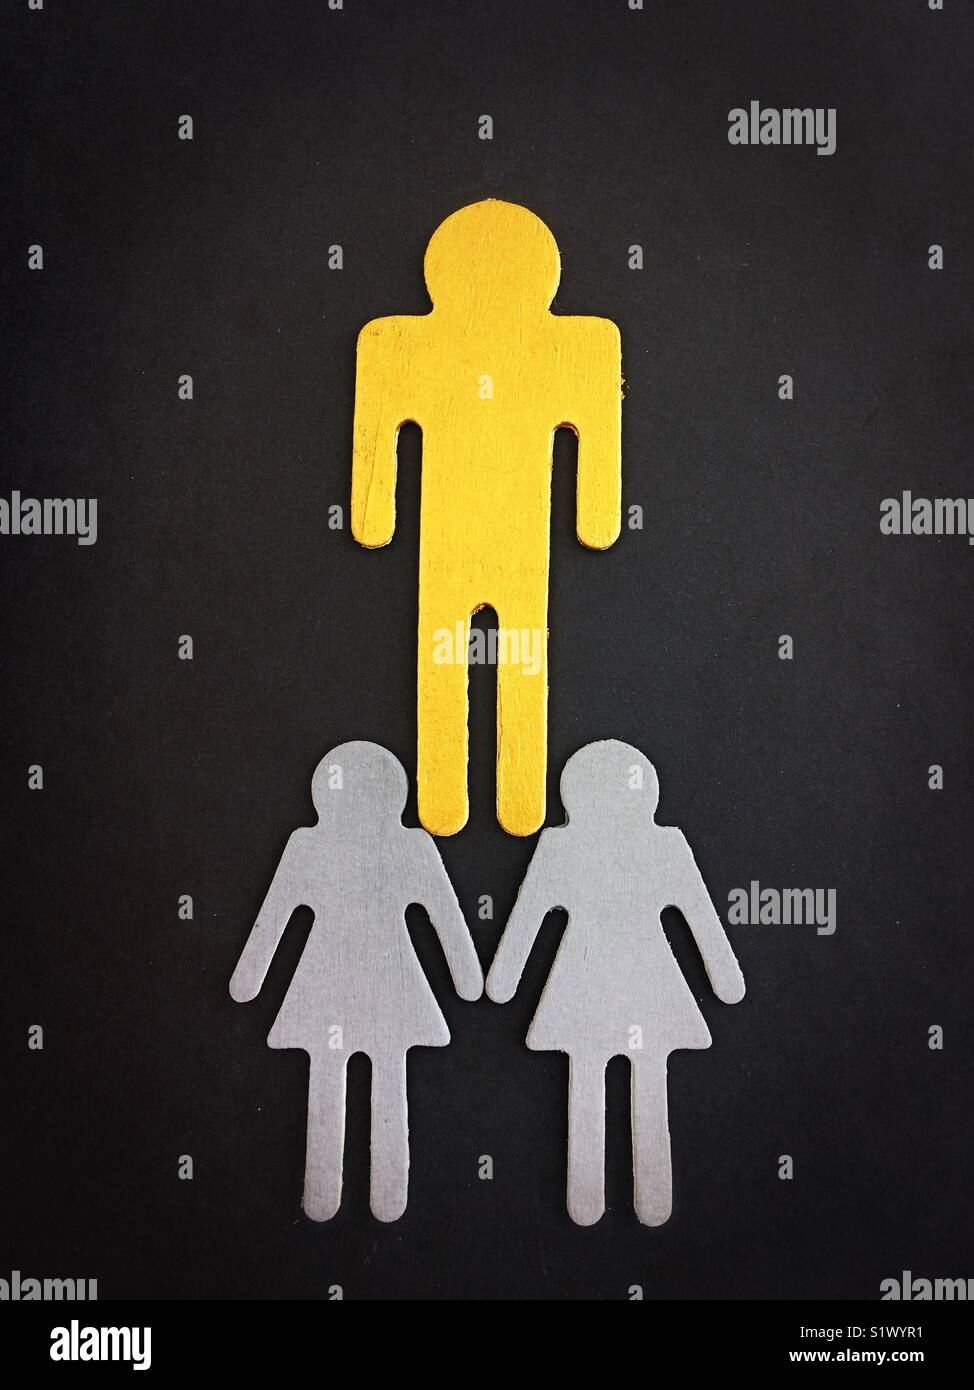 Conceptual: gender inequality. - Stock Image